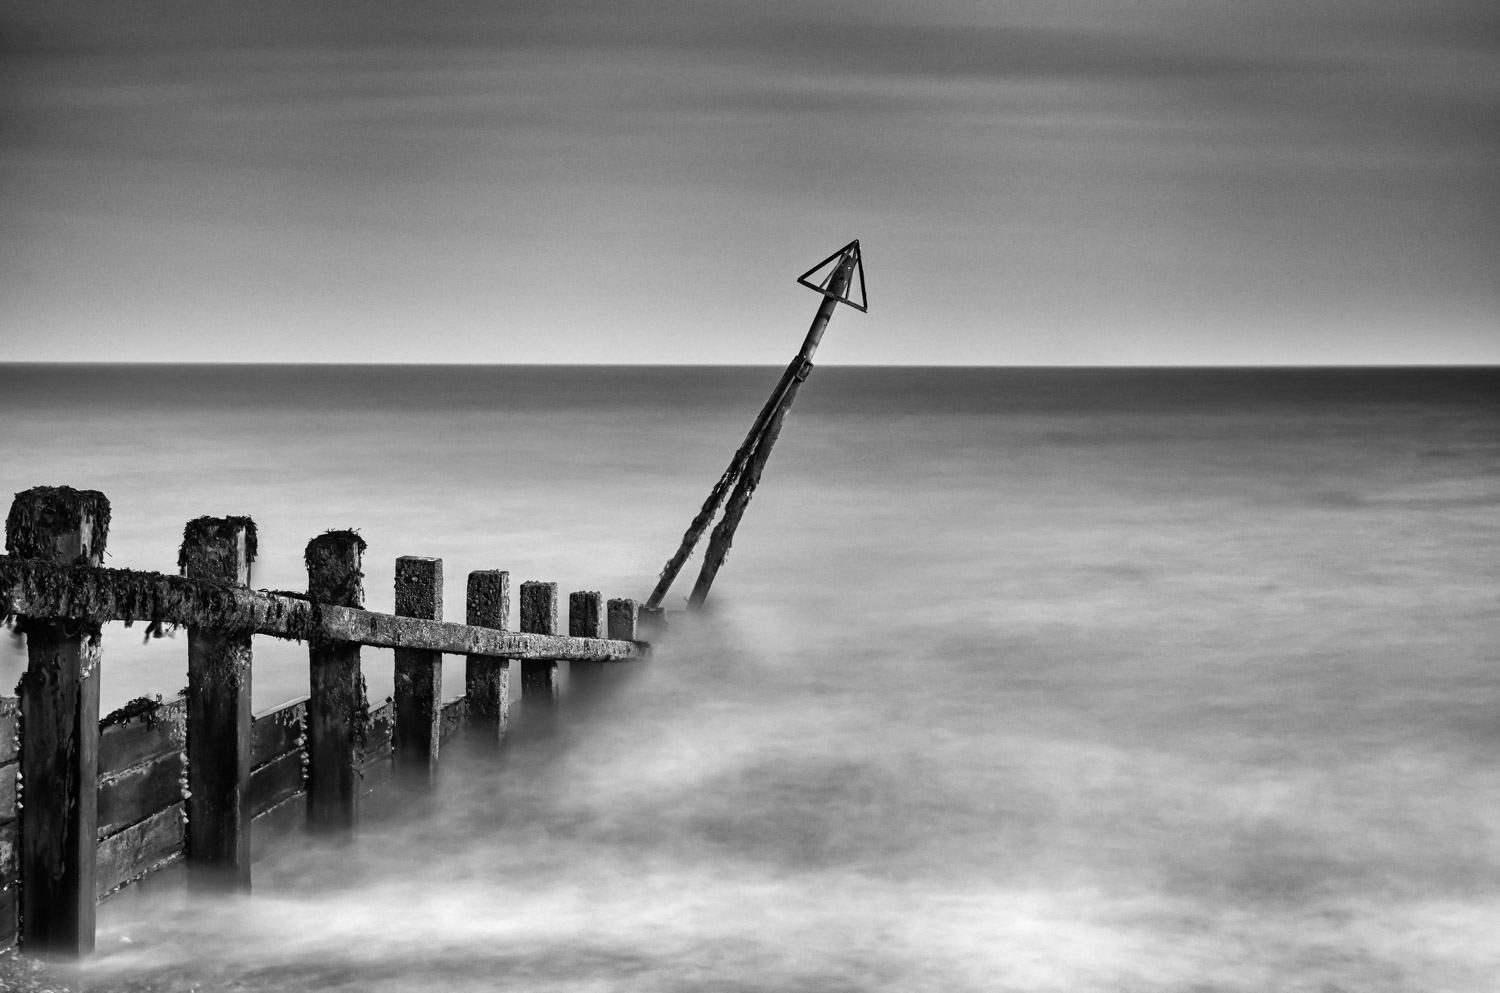 a 10 Stop Neutral Density Filter (Lee Big Stopper) to slow the exposure time and remove detail from the sea